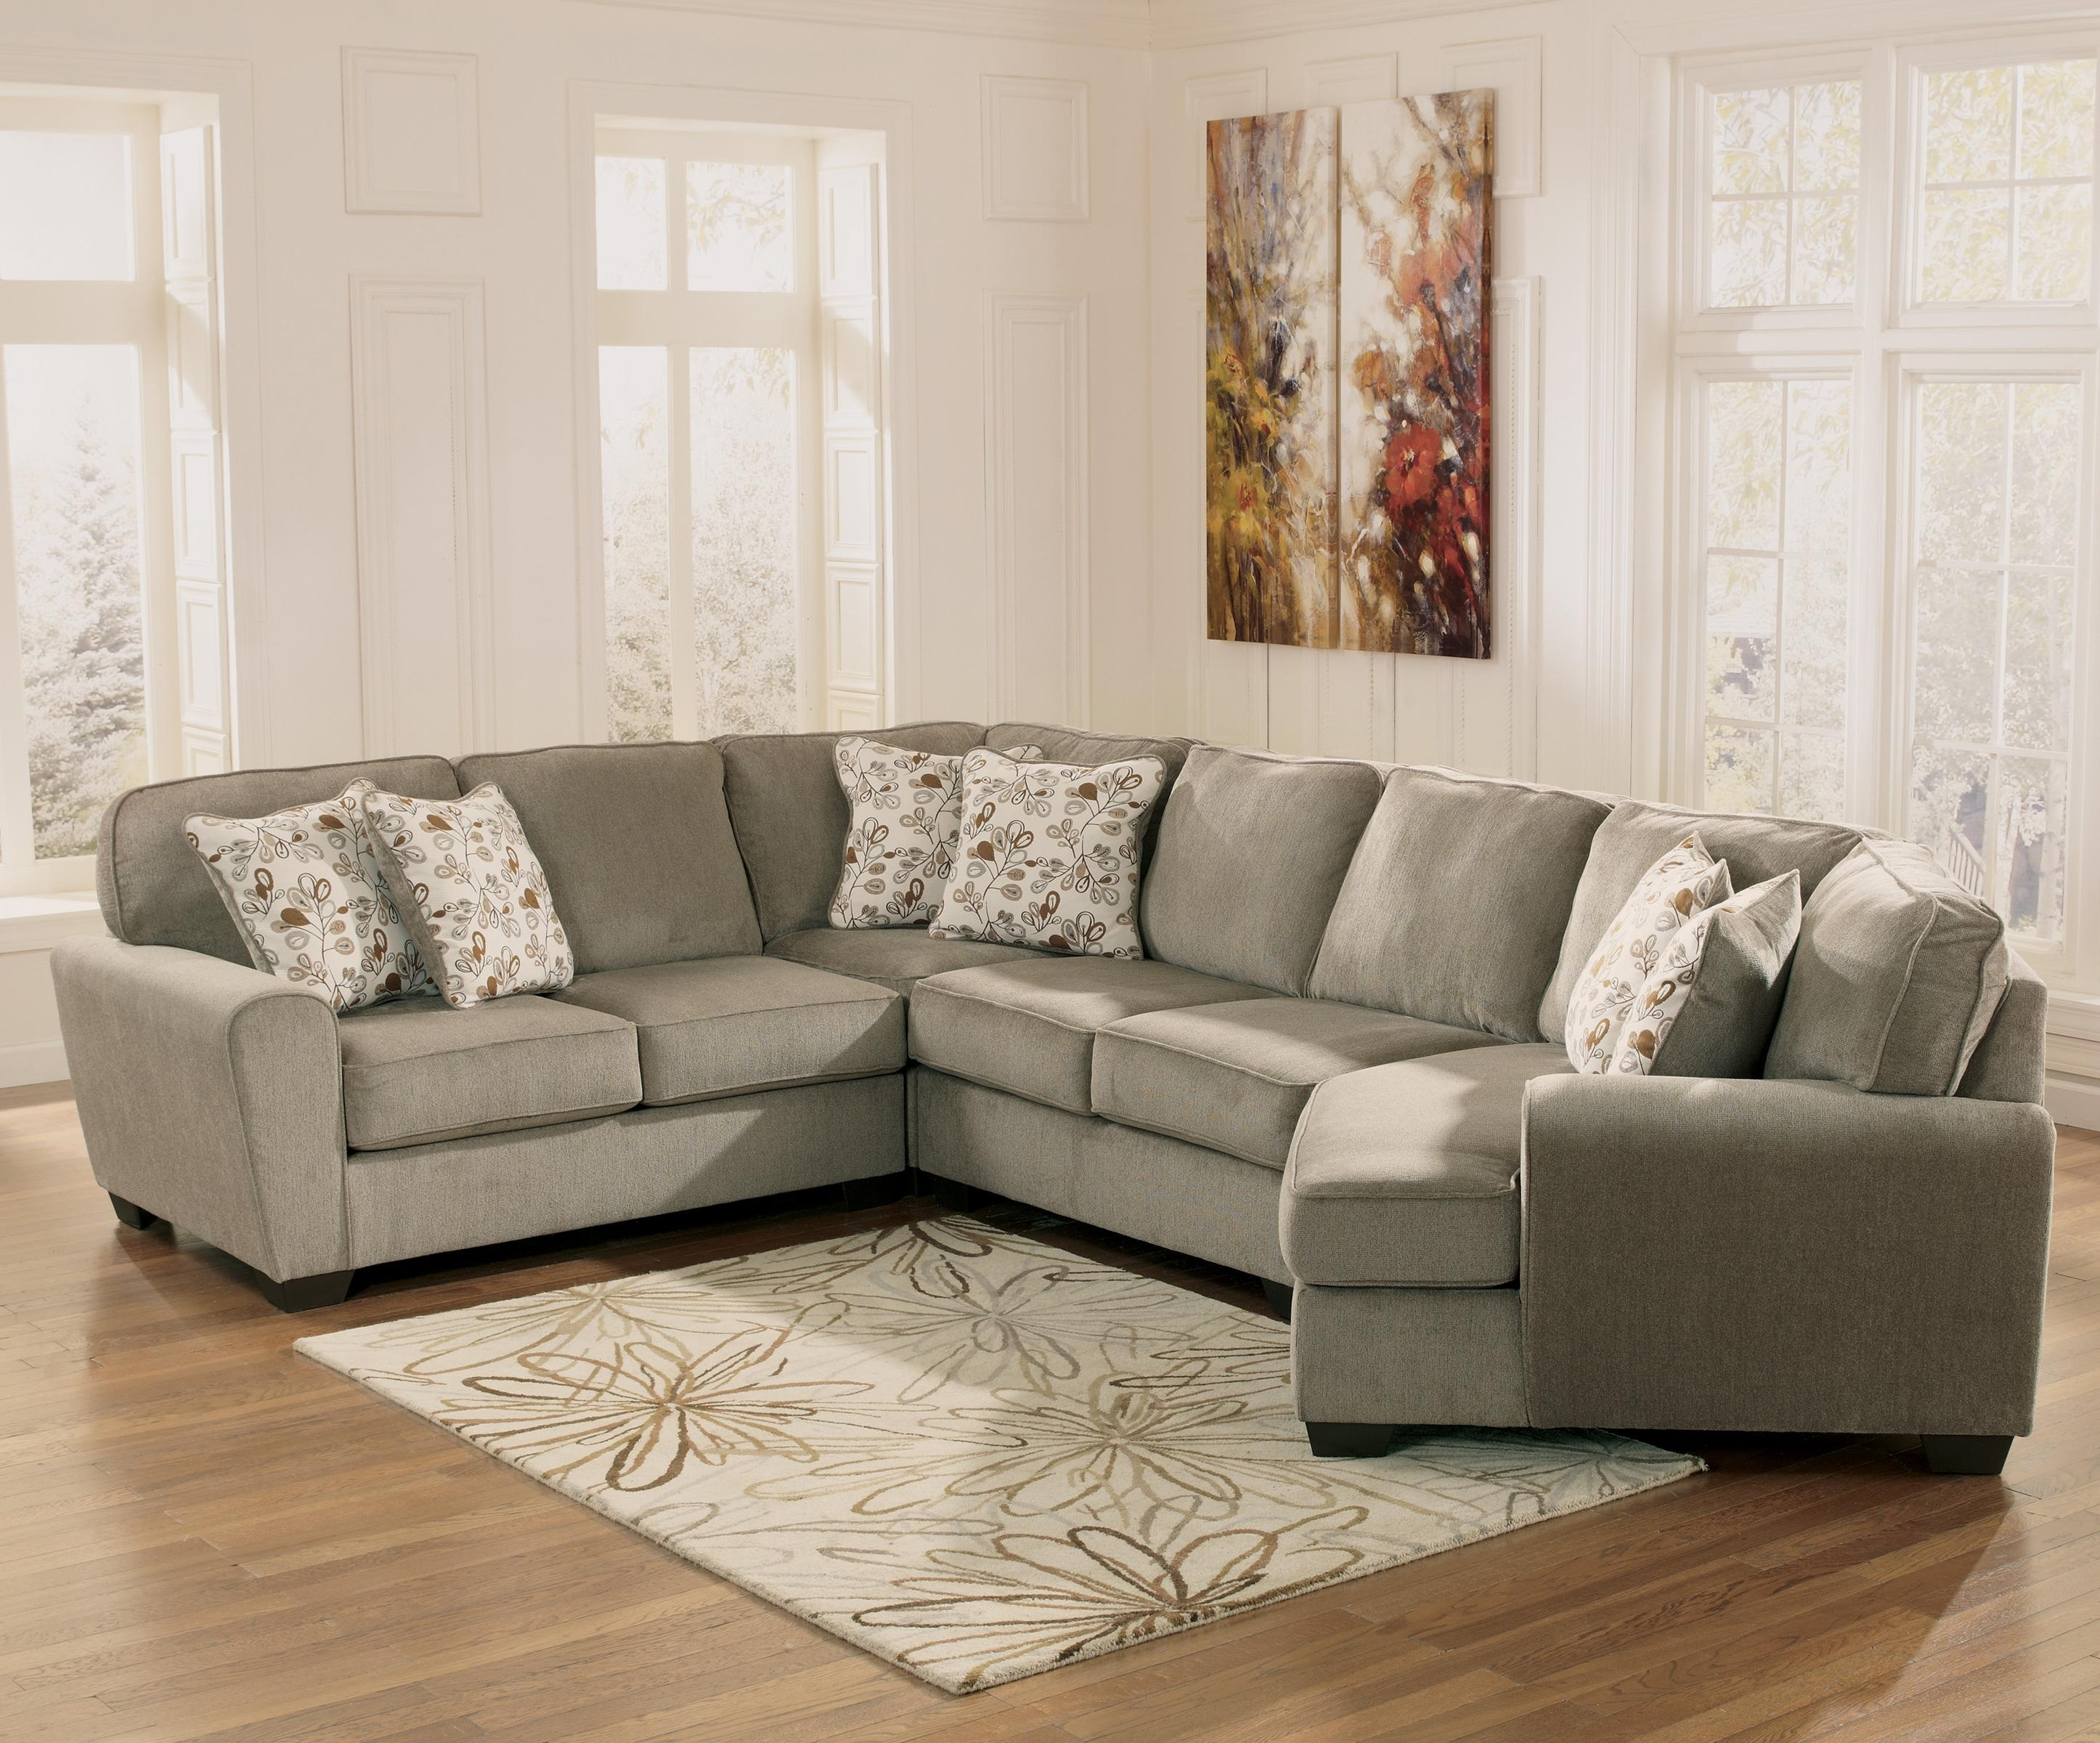 Patina 4 Piece Small Sectional With Right Cuddler | Rotmans | Sofa For Sectional Sofas With Cuddler (View 3 of 10)